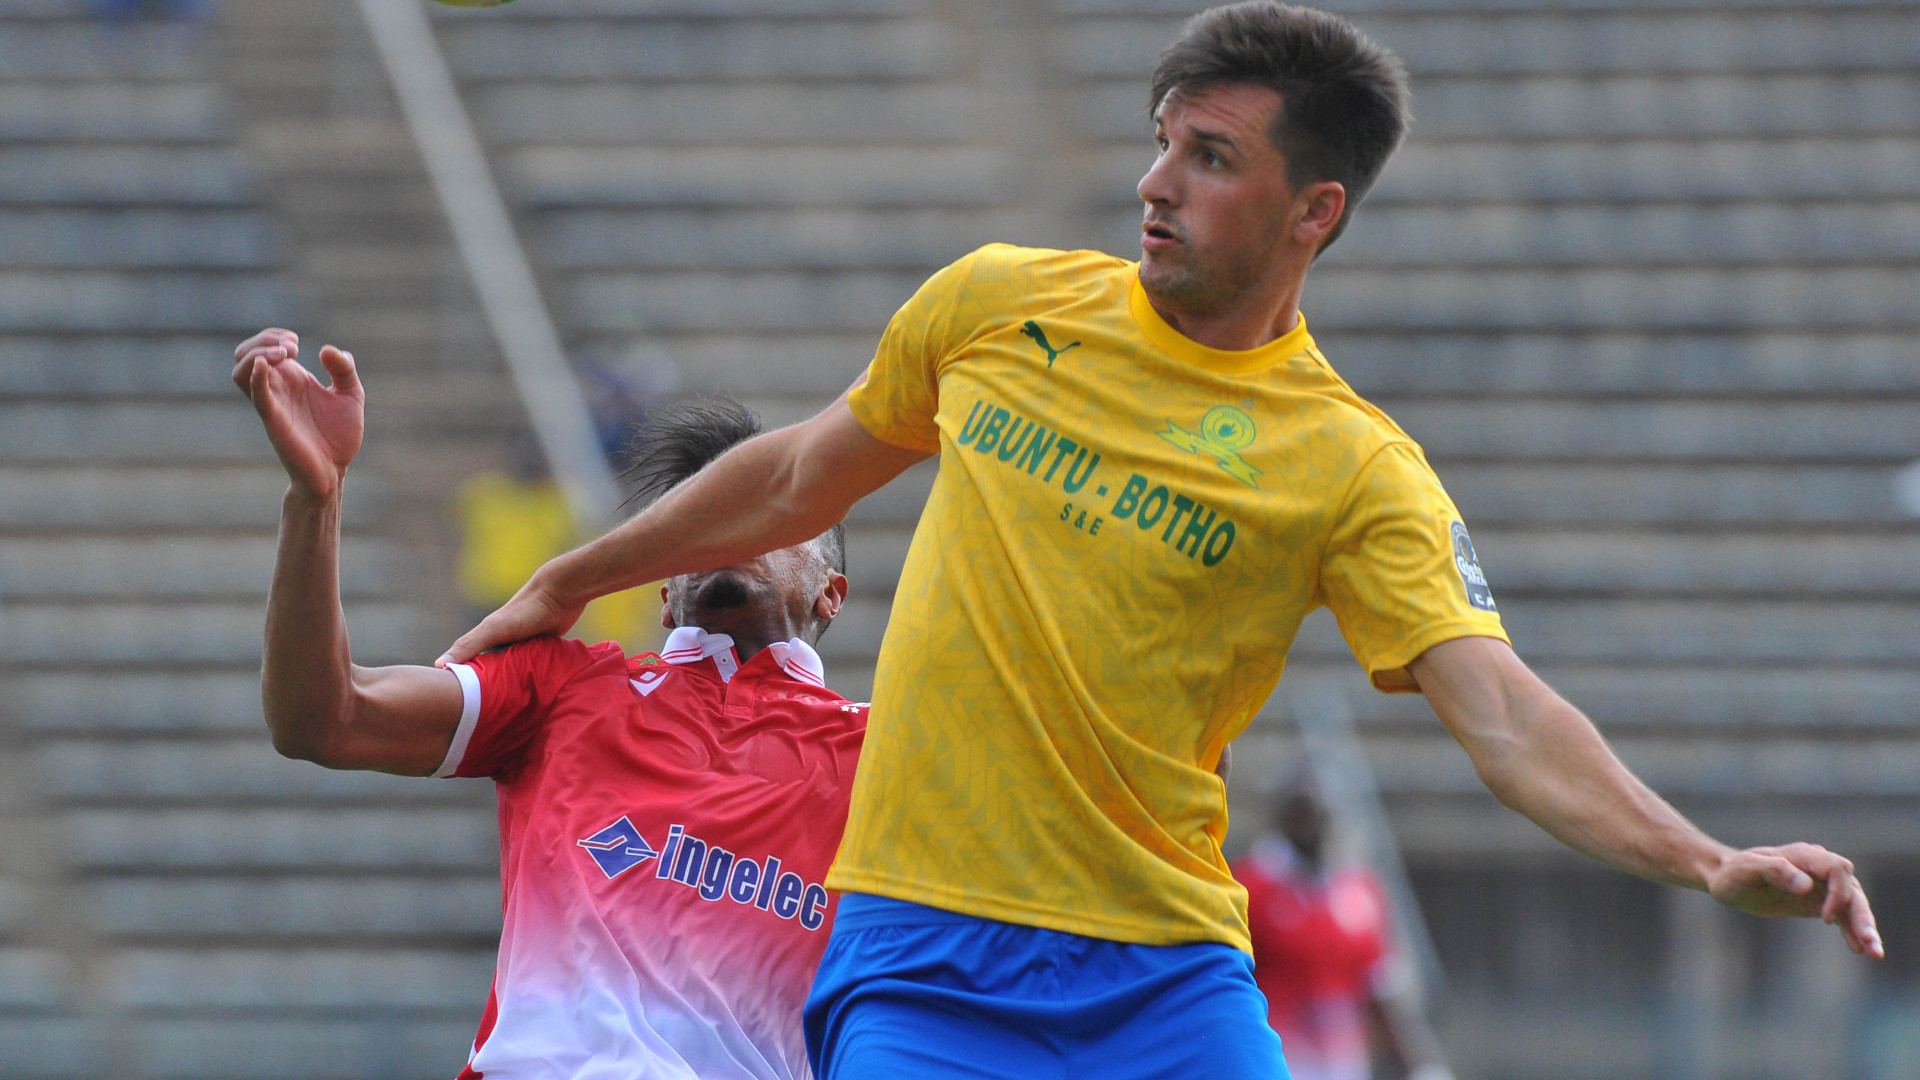 I want to get back to doing what I love the most - Mamelodi Sundowns' Affonso